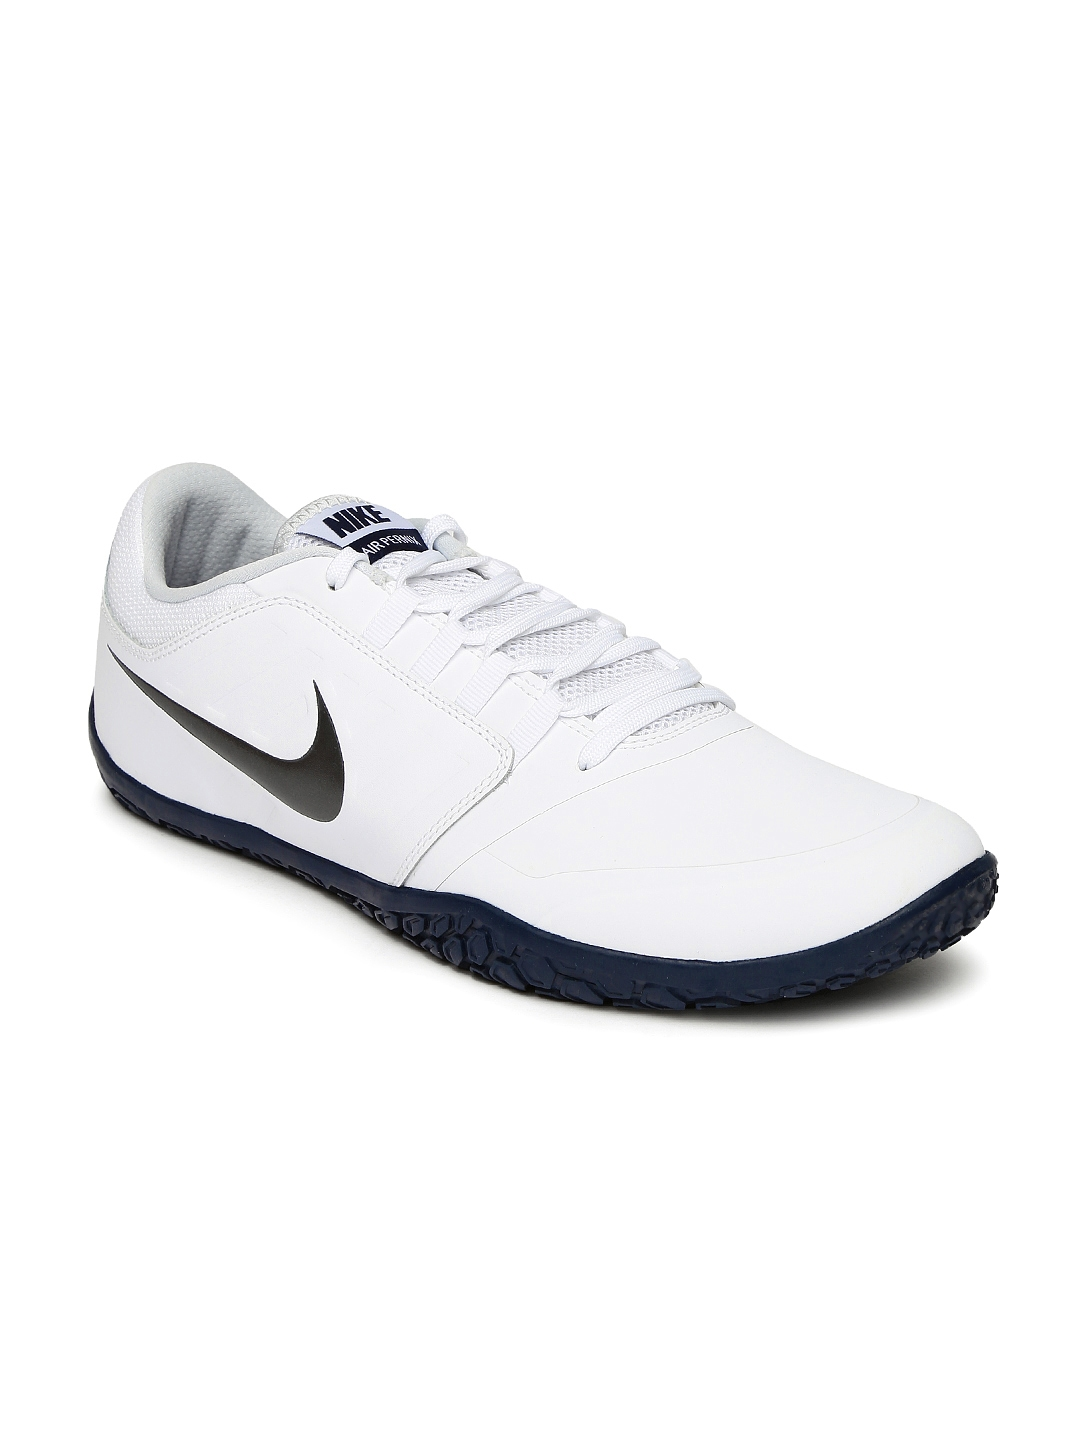 Nike Air Pernix Training Shoes